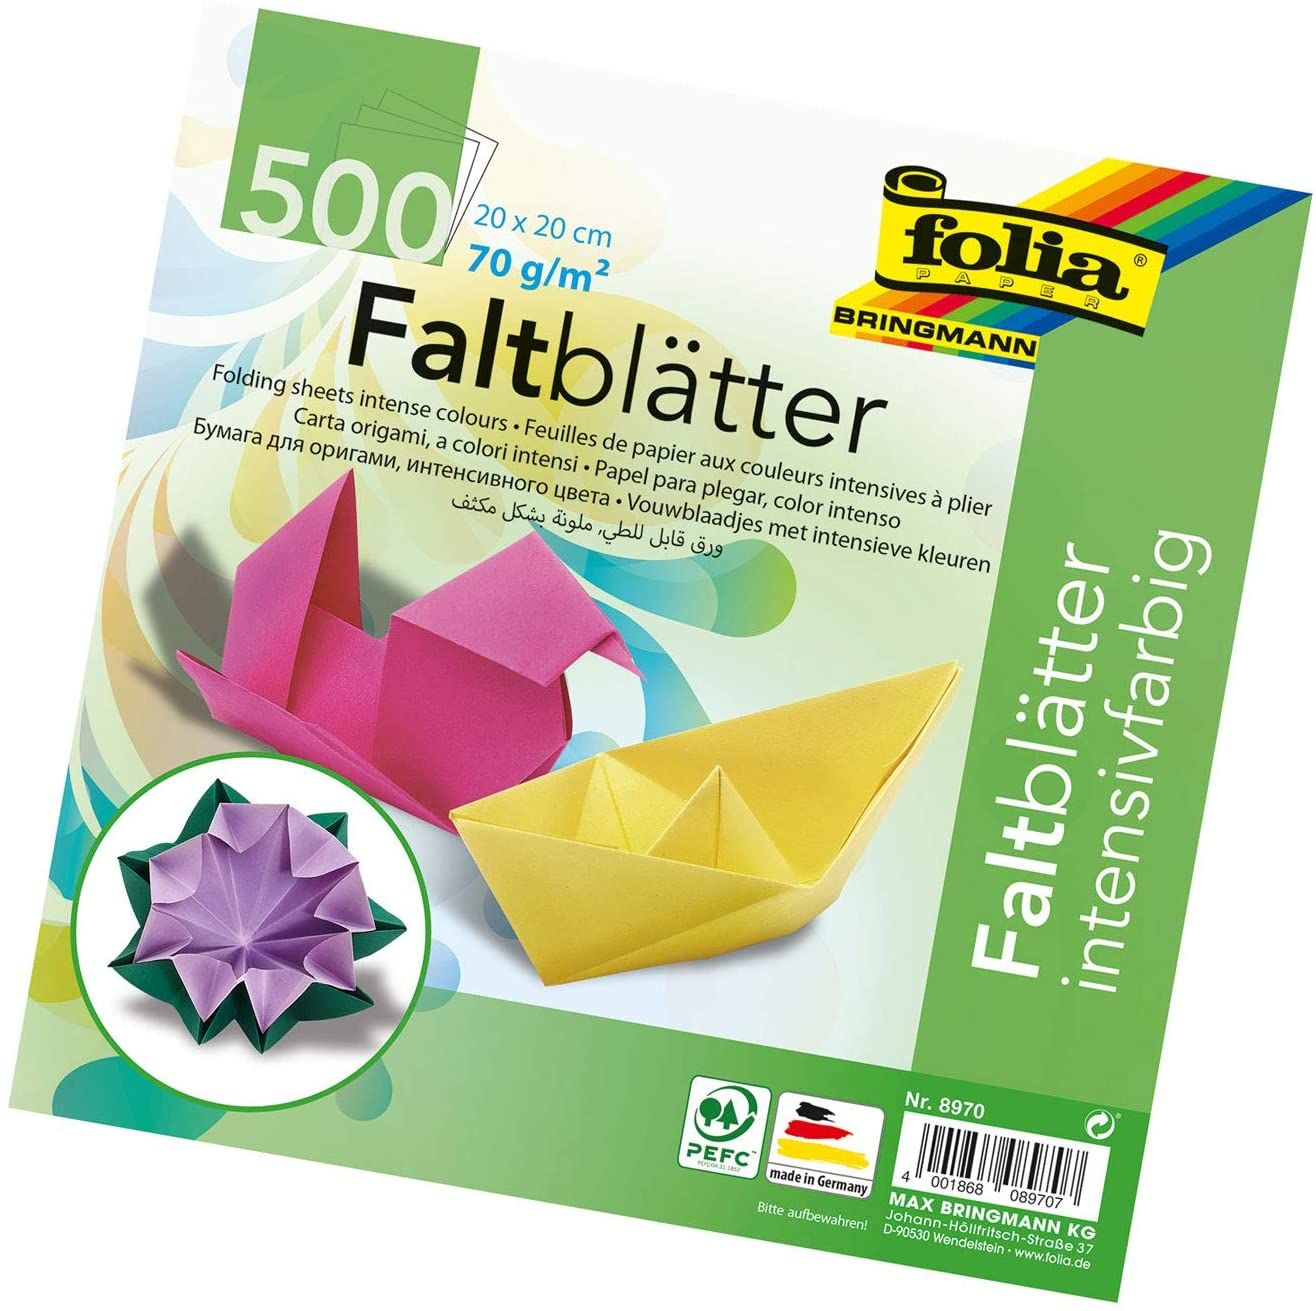 Speedball Folia 8970 Square Colored 8-by-8-Inch Origami Paper, 500 Sheets